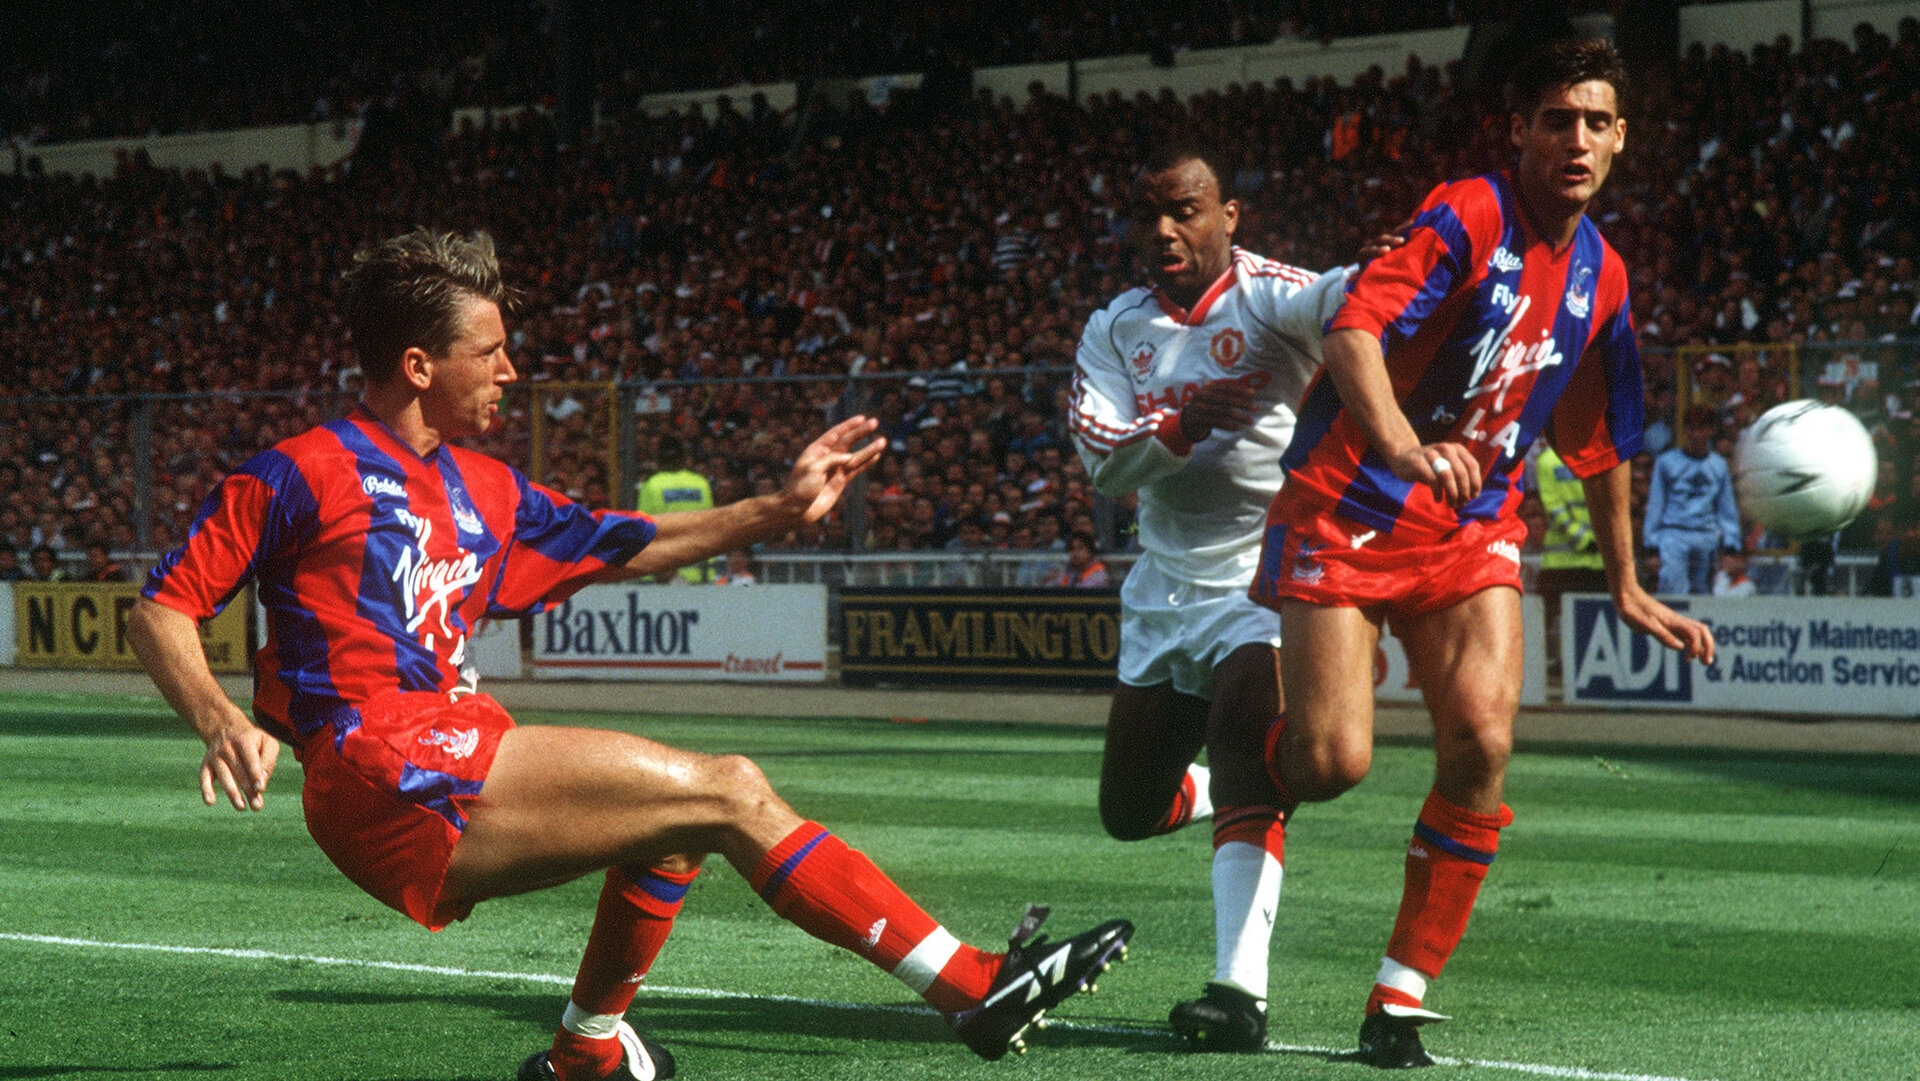 Football - Crystal Palace v Manchester United - FA Cup  Final - 12/5/90  Mandatory Credit : Action Images  Alan Pardew clears for Crystal Palace as Danny Wallace moves in